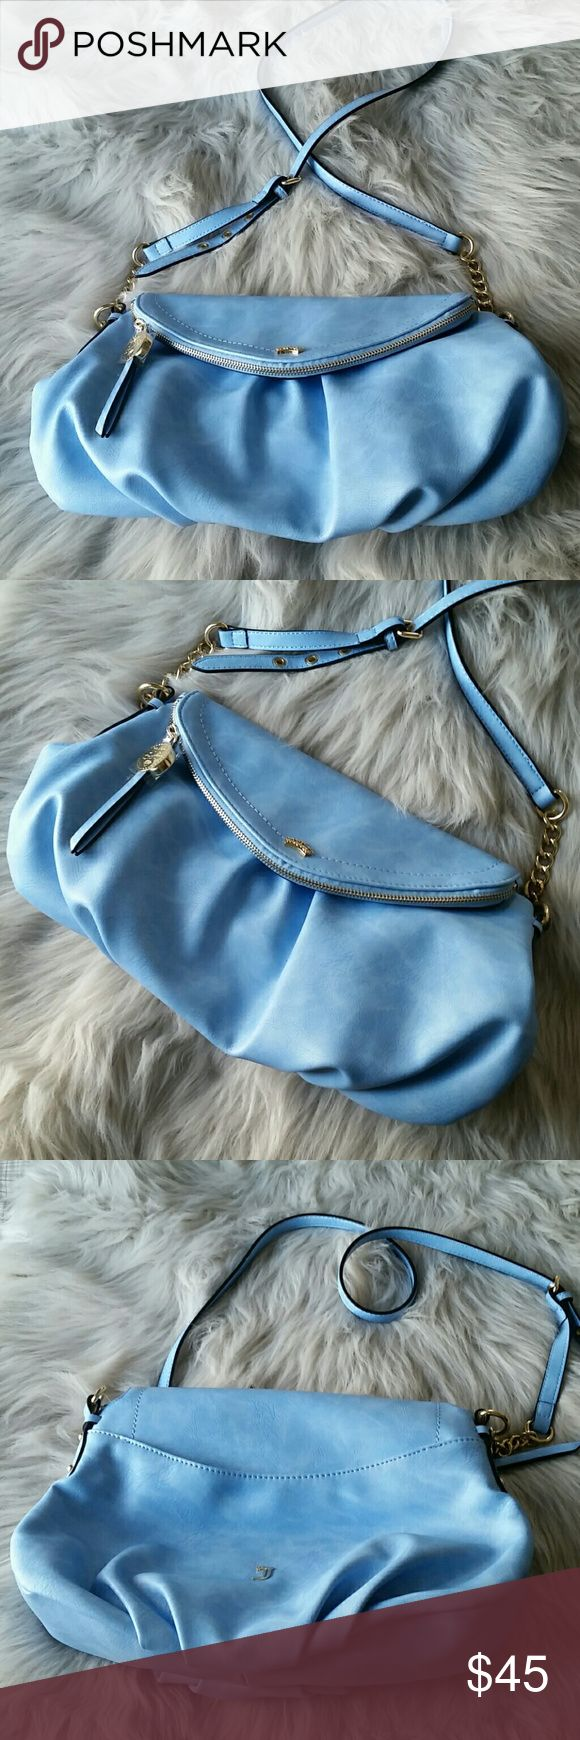 Juicy Couture large crossbody bag light blue Juicy Couture large crossbody bag. Brand new without tags! Never worn/used.  * crossbody style with adjustable strap * gold hardware * bright pink monogram lining * hidden zipper compartment  I love offers! Please feel free to negotiate price through the offer button. Juicy Couture Bags Crossbody Bags